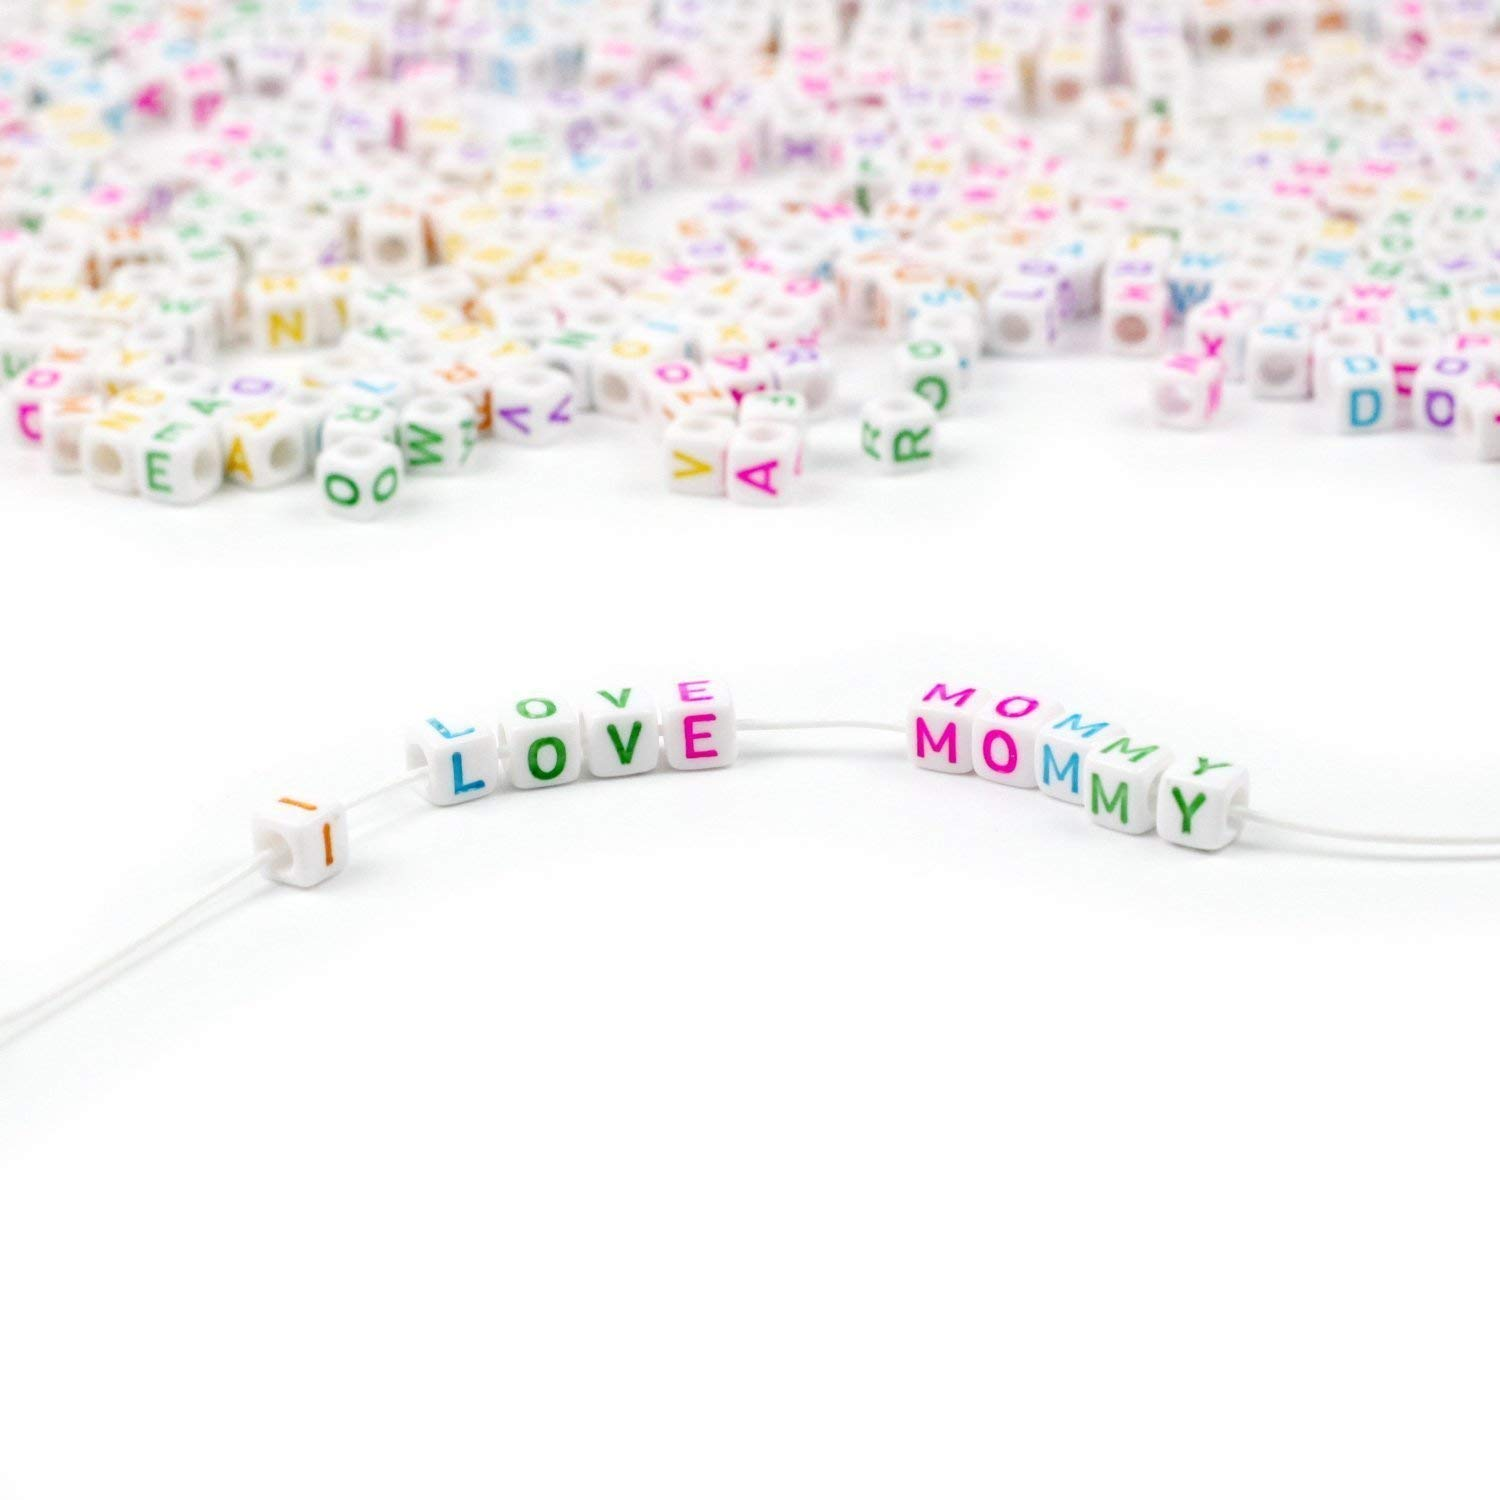 1000pcs 6mm Colorful Beads White Alphabet Beads with Colorful Letters for DIY Bracelets, Necklaces, Children's Educational Toys, Handmade Gift